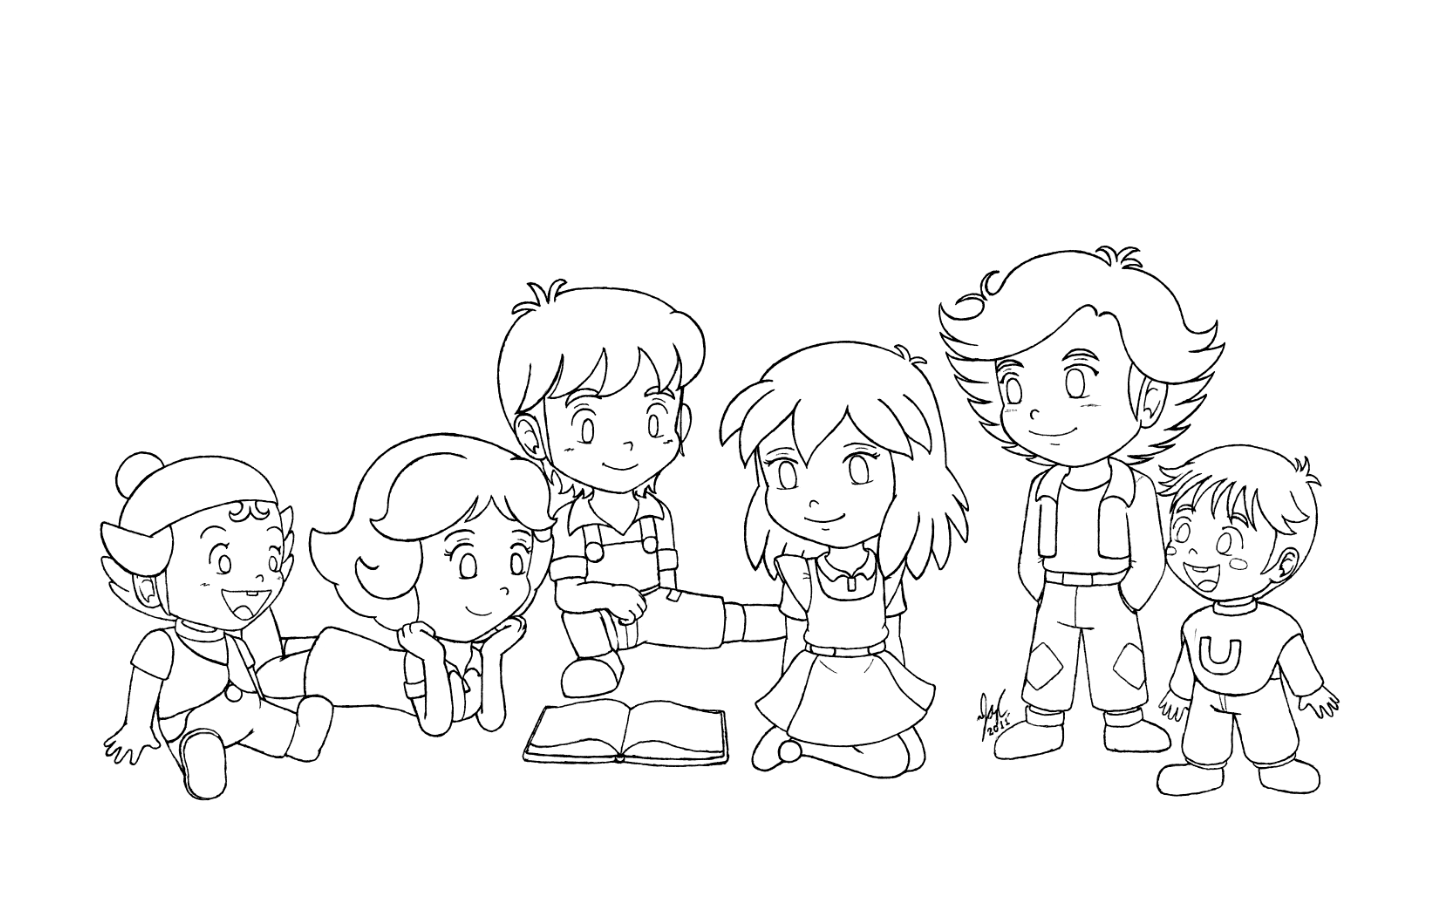 Line Art For Kids : Tatsunoko bible kids line art by jazzy c oaks on deviantart